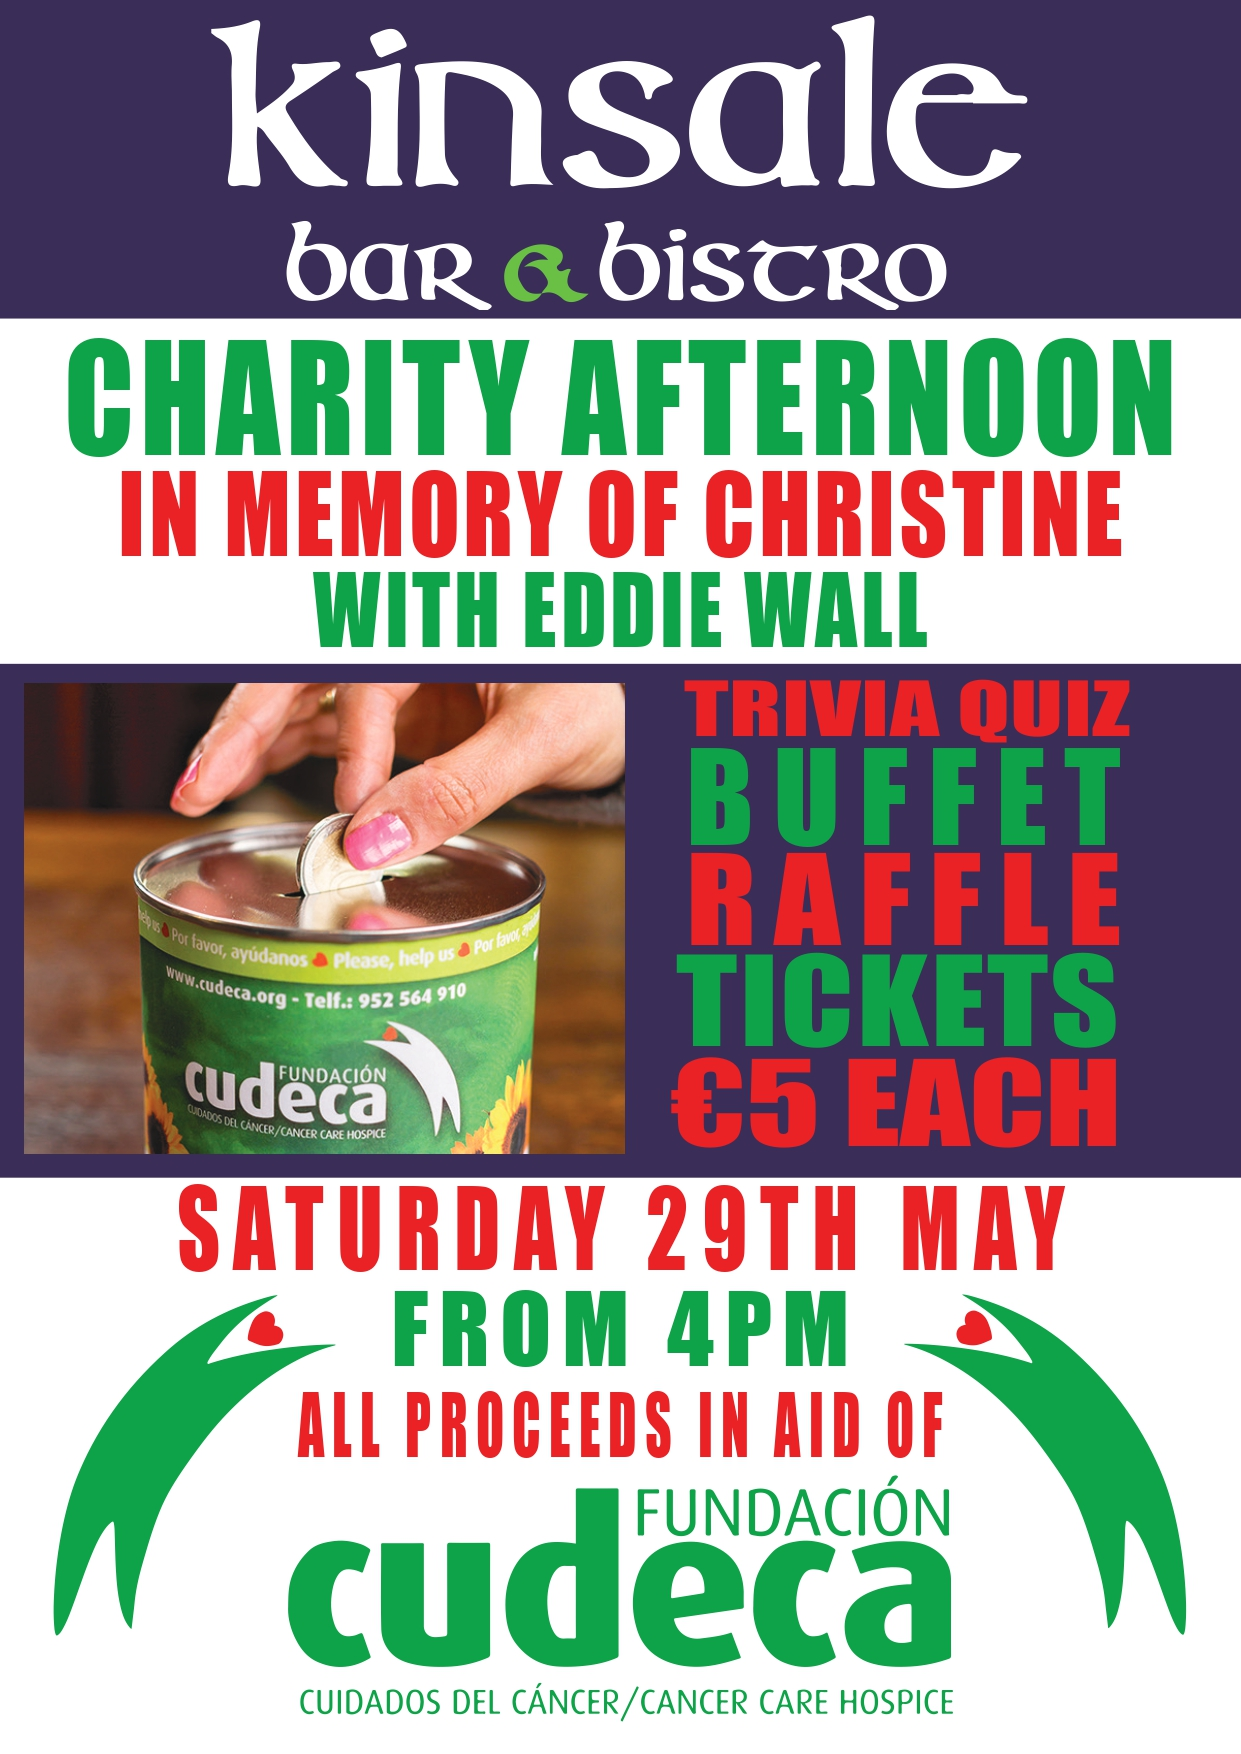 Charity afternoon in memory of Christine with Eddie Wall at Kinsale Bar